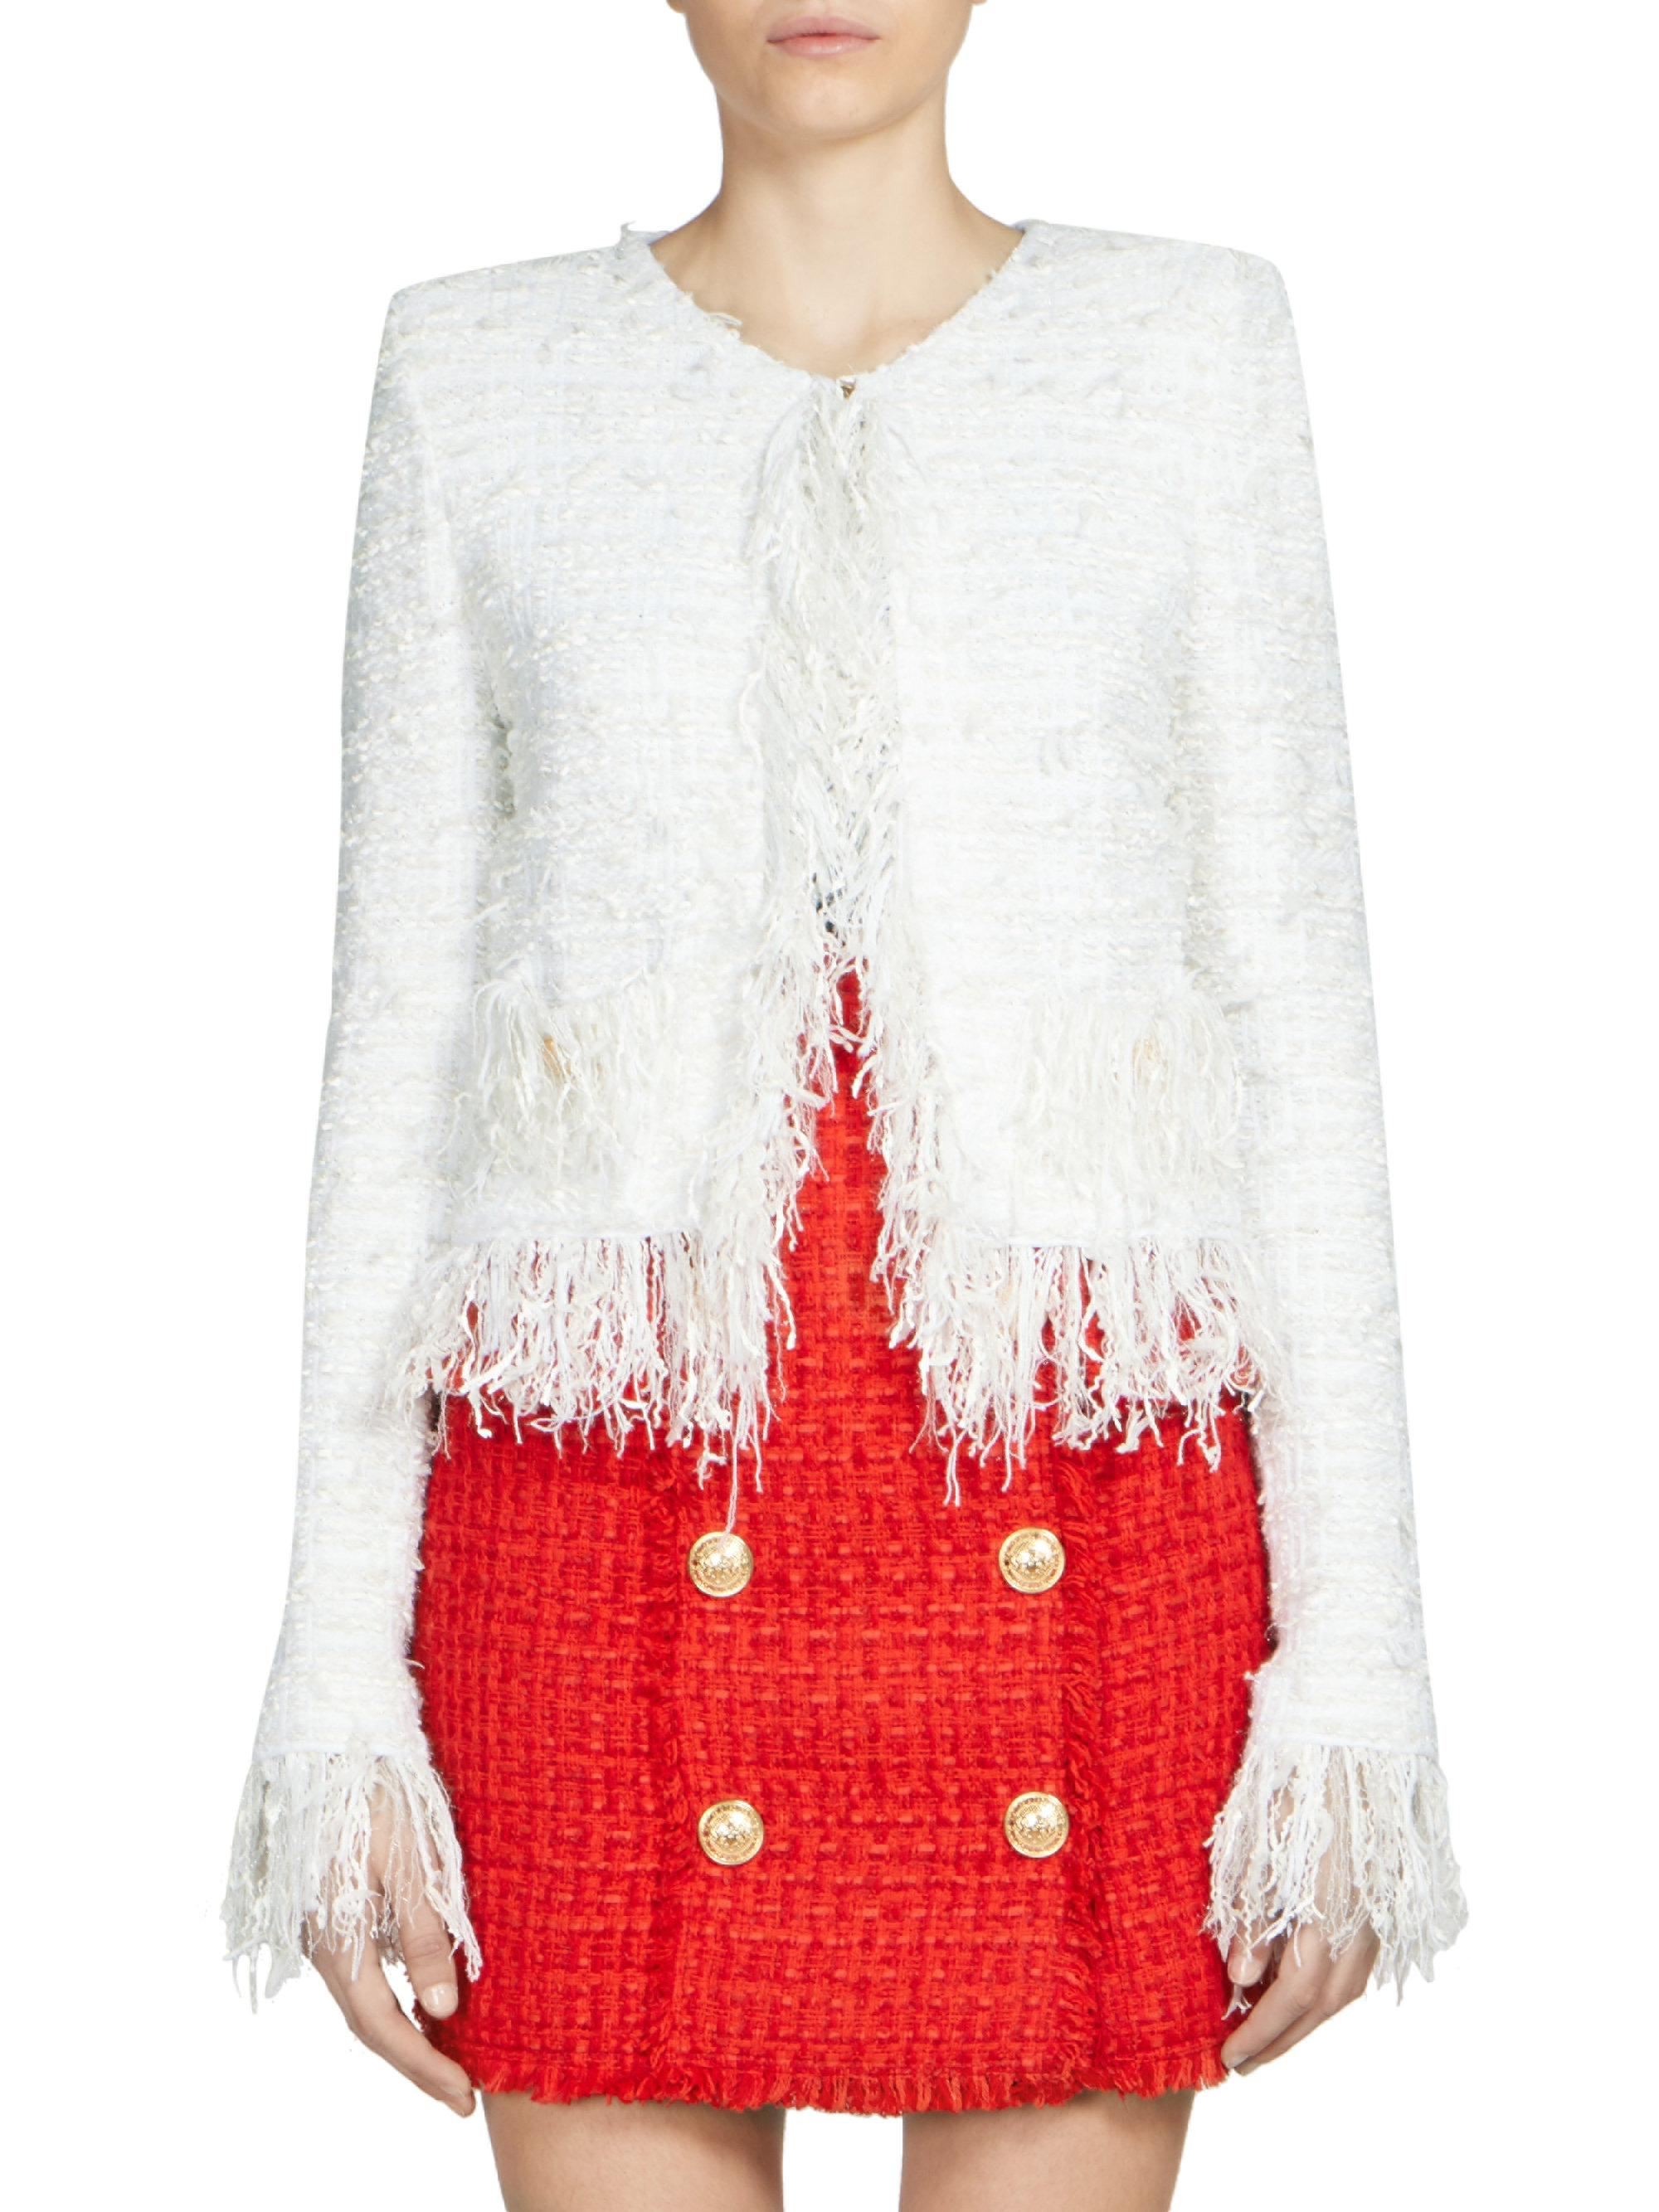 3b2a4b05b3e289 Balmain Fringe Tweed Jacket in White - Lyst